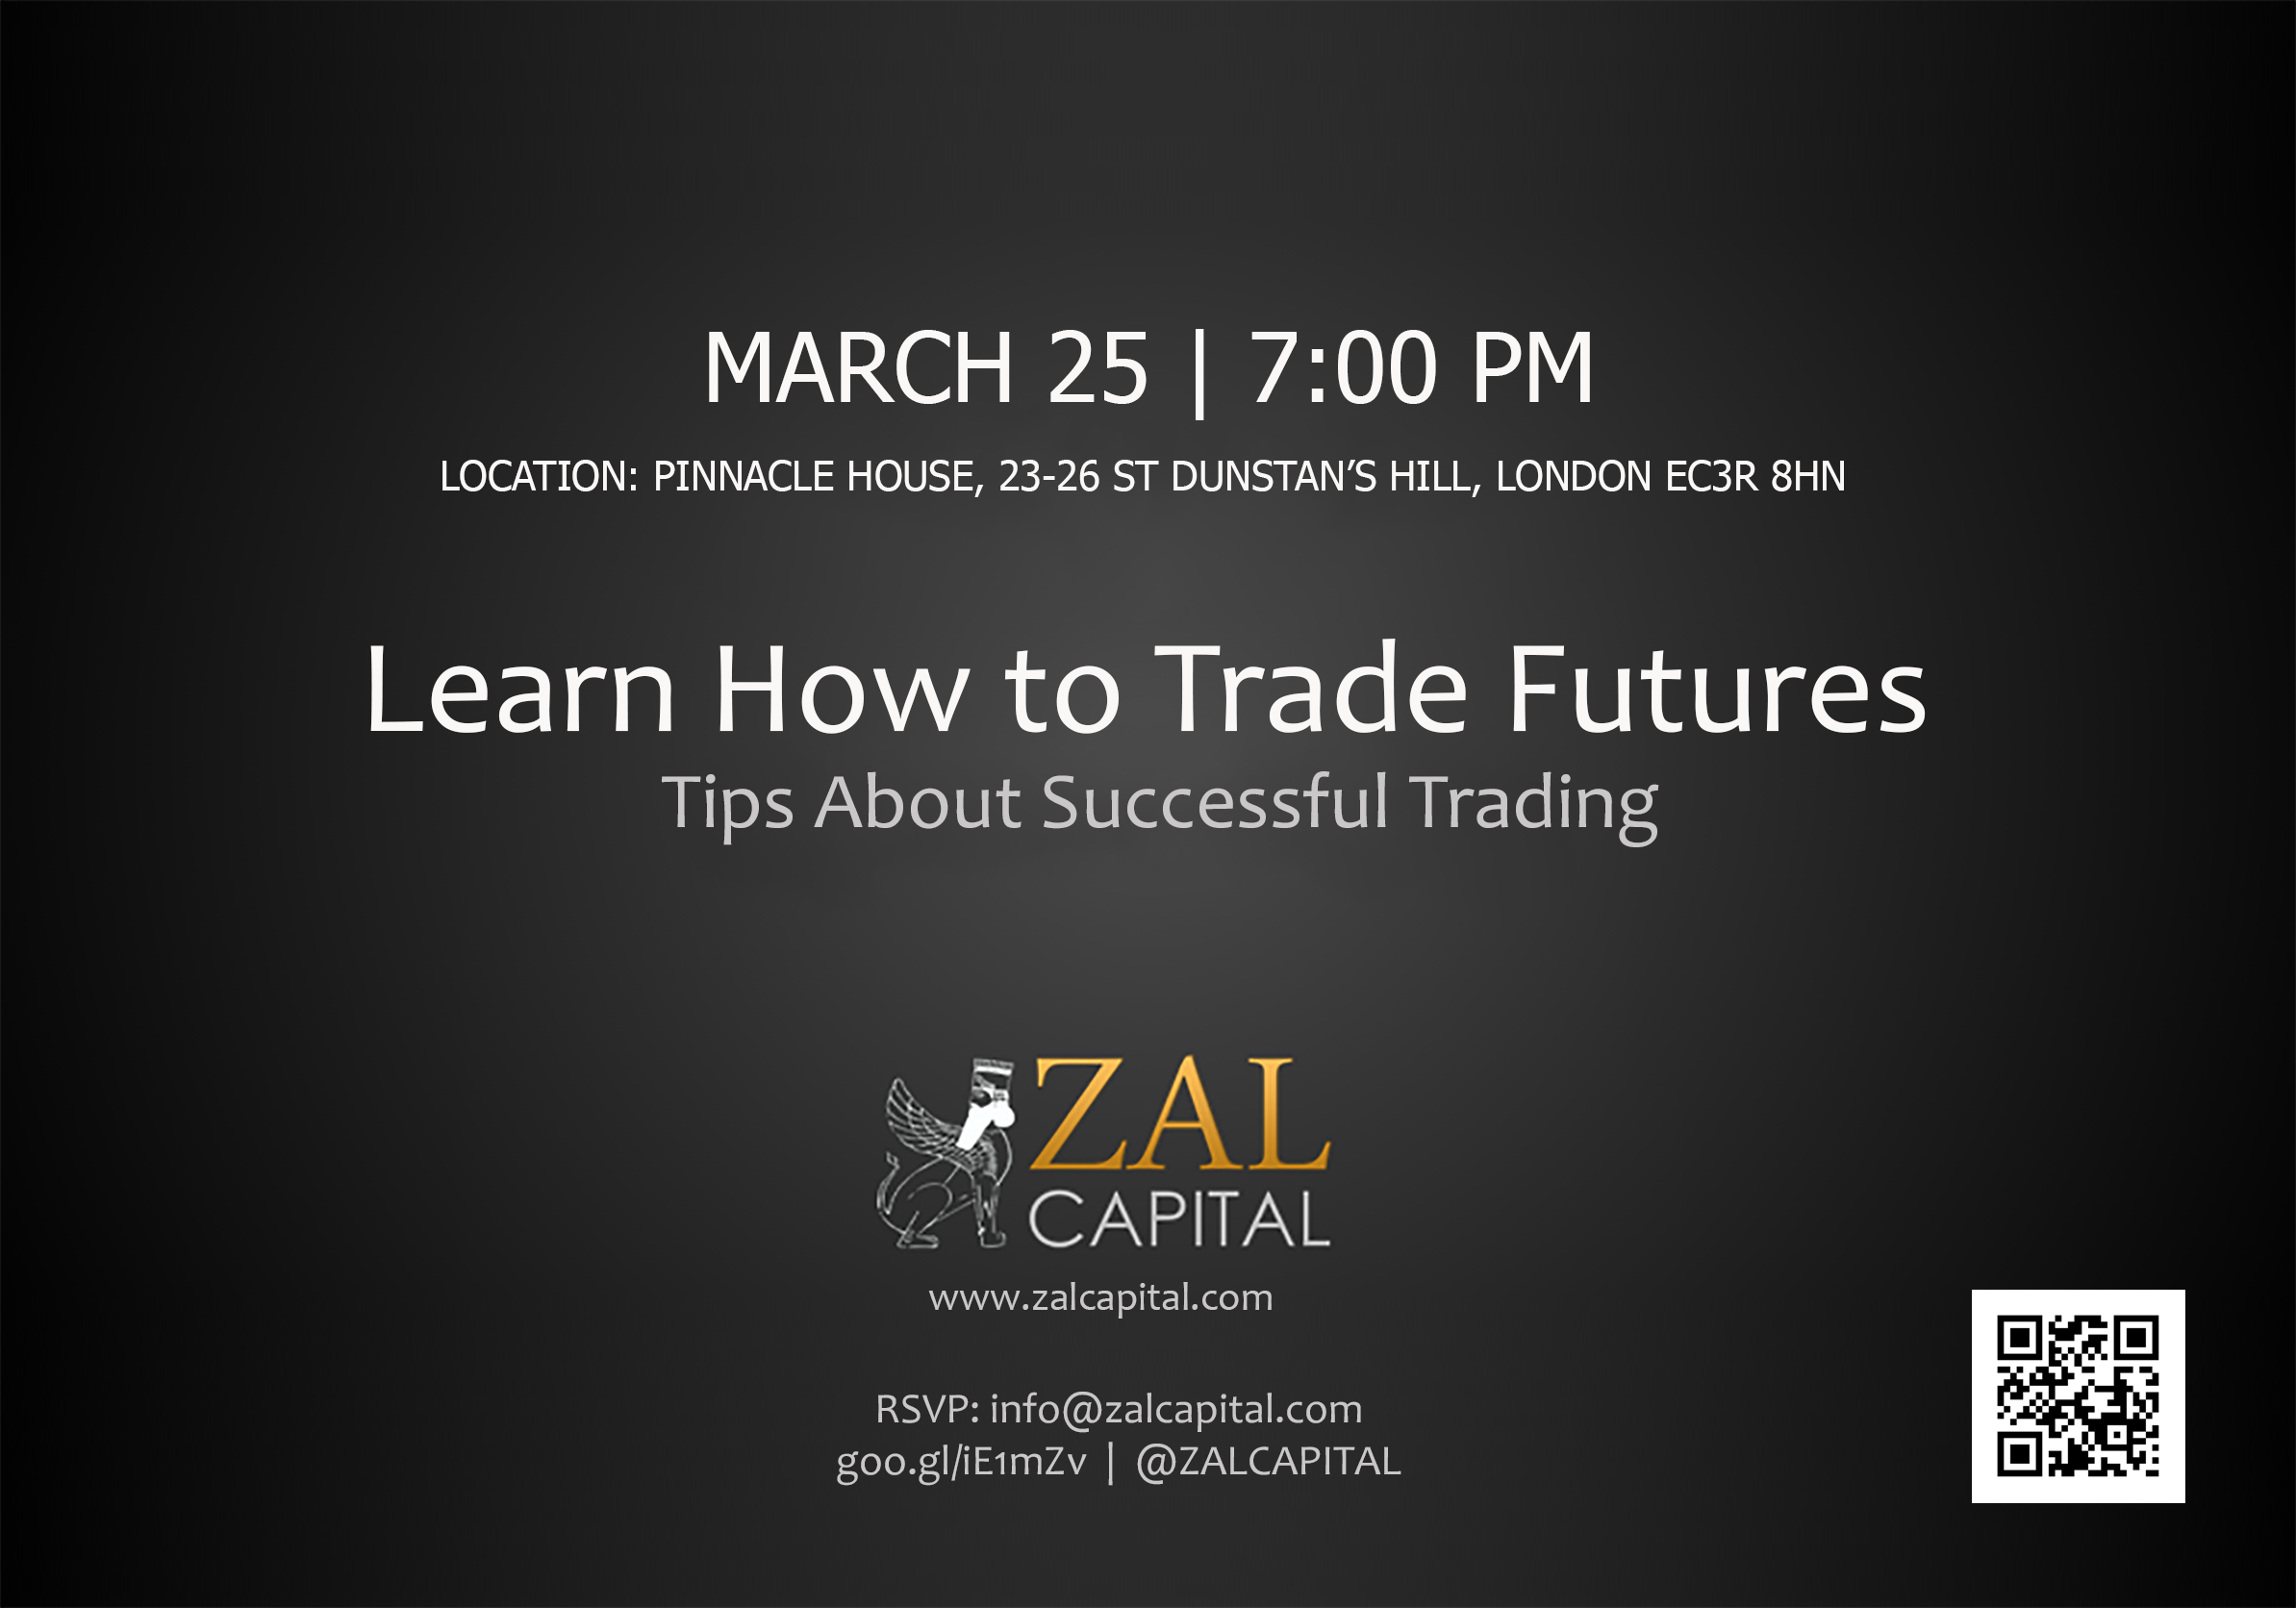 Learn to trade futures options